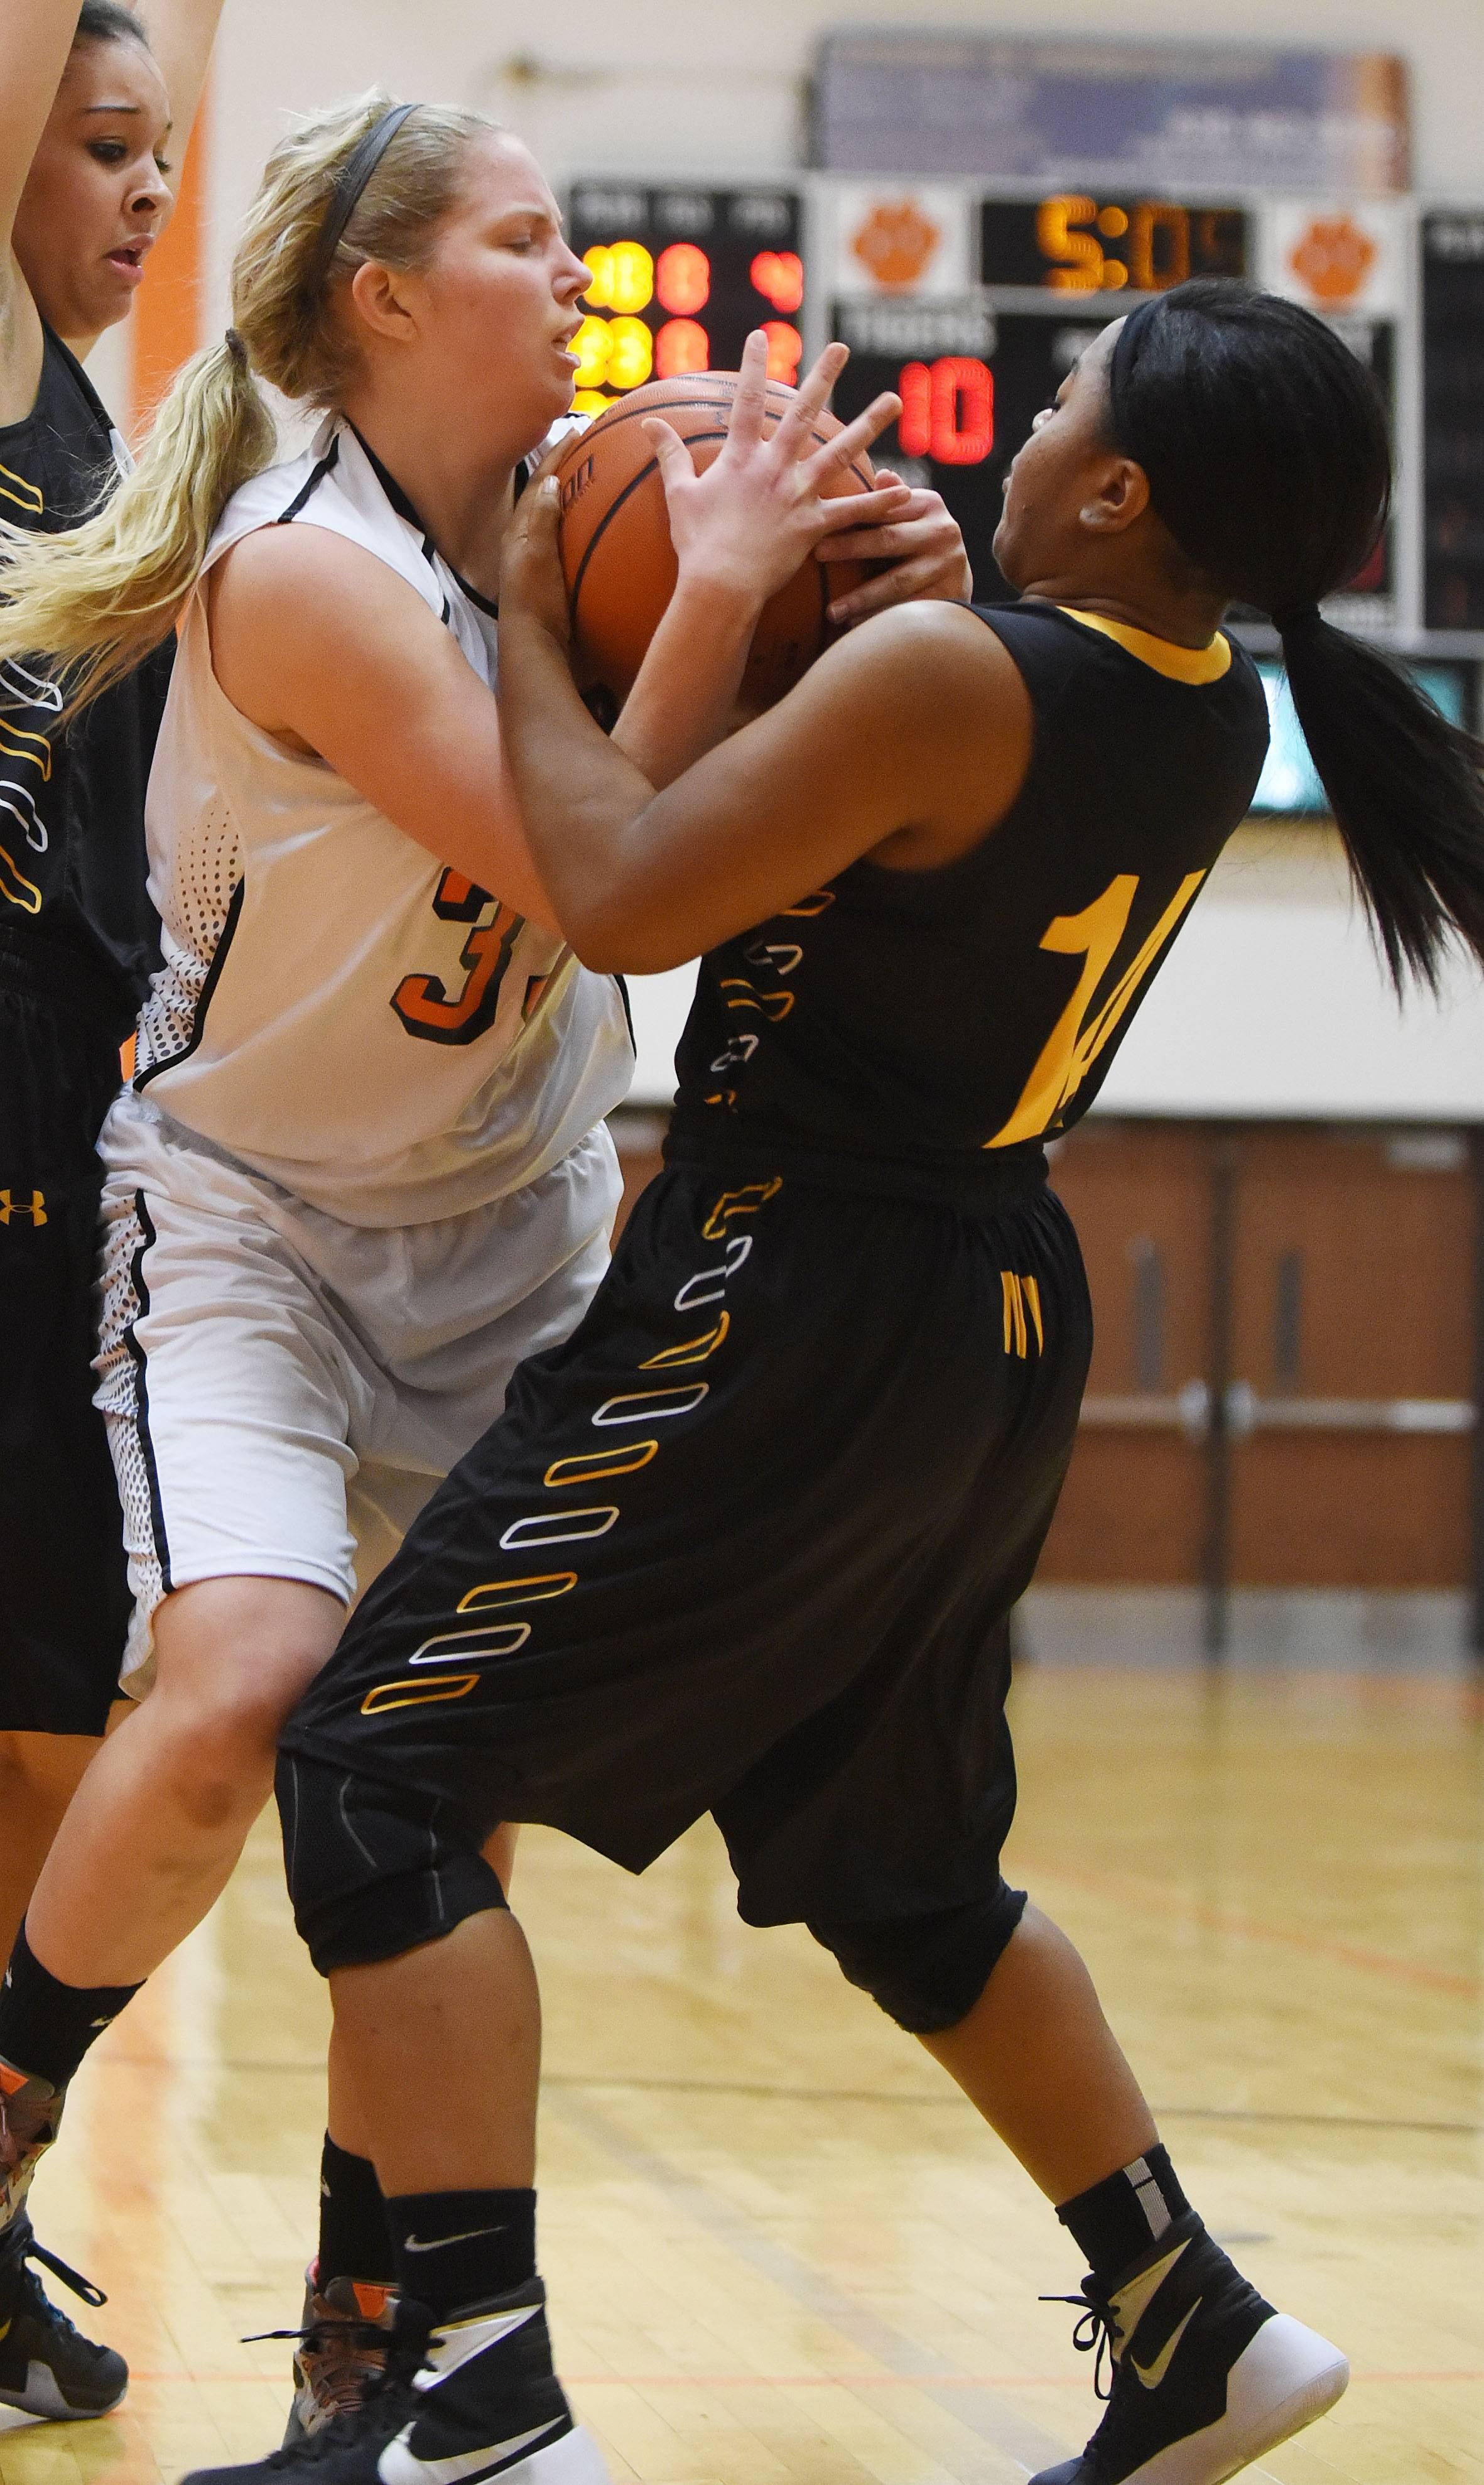 Ellen Anderson of Wheaton Warrenville South and Meryl Barns of Metea Valley vie for control of the ball.